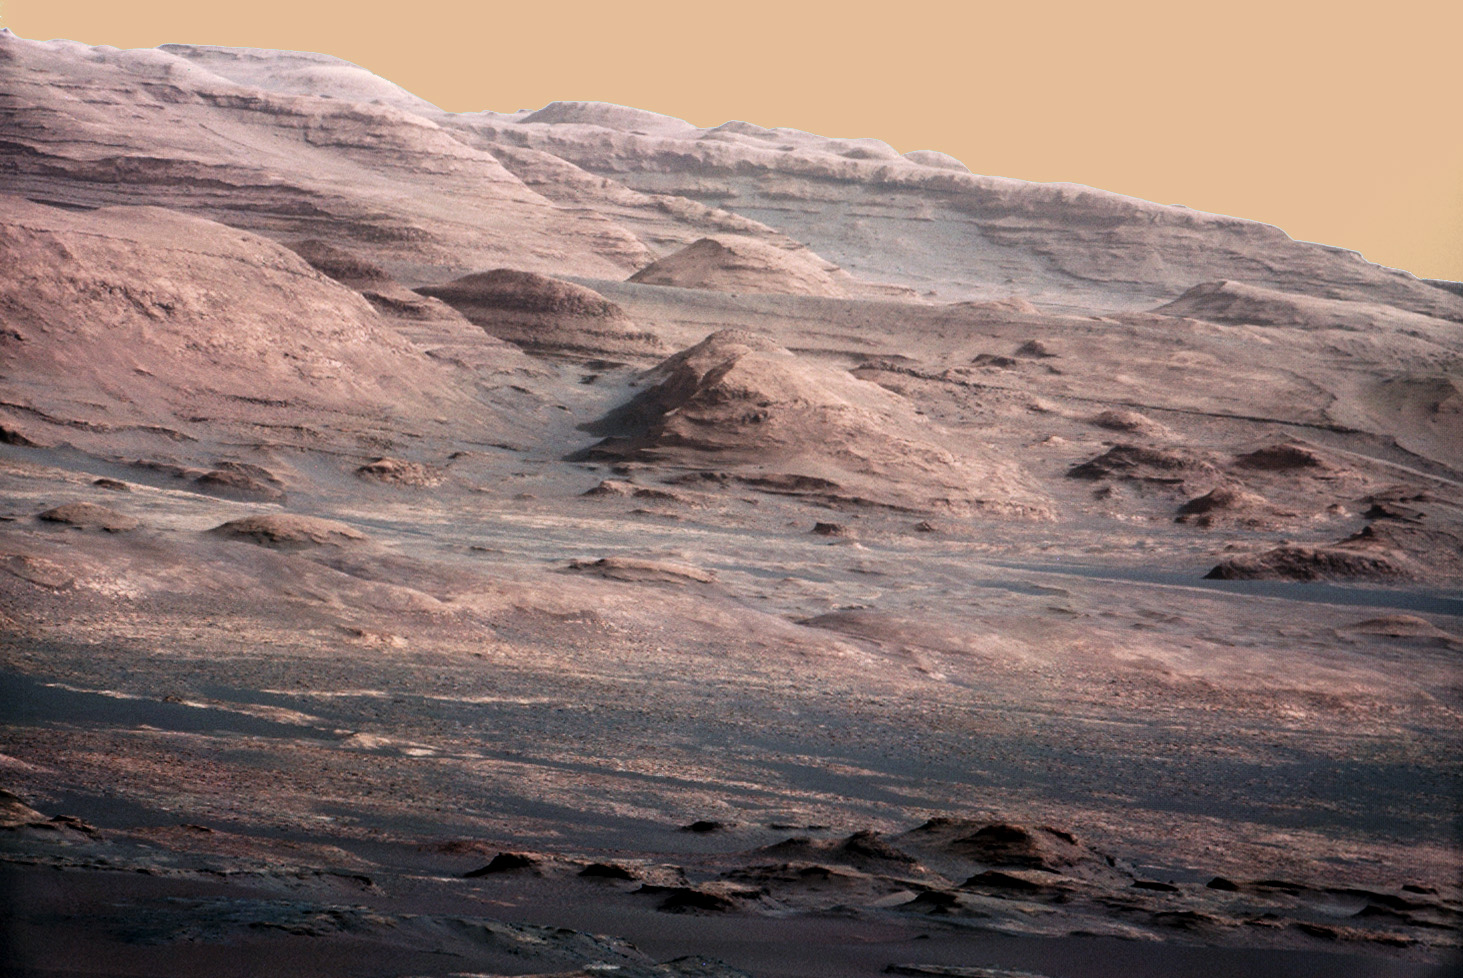 Background: Mt. Sharp M-100